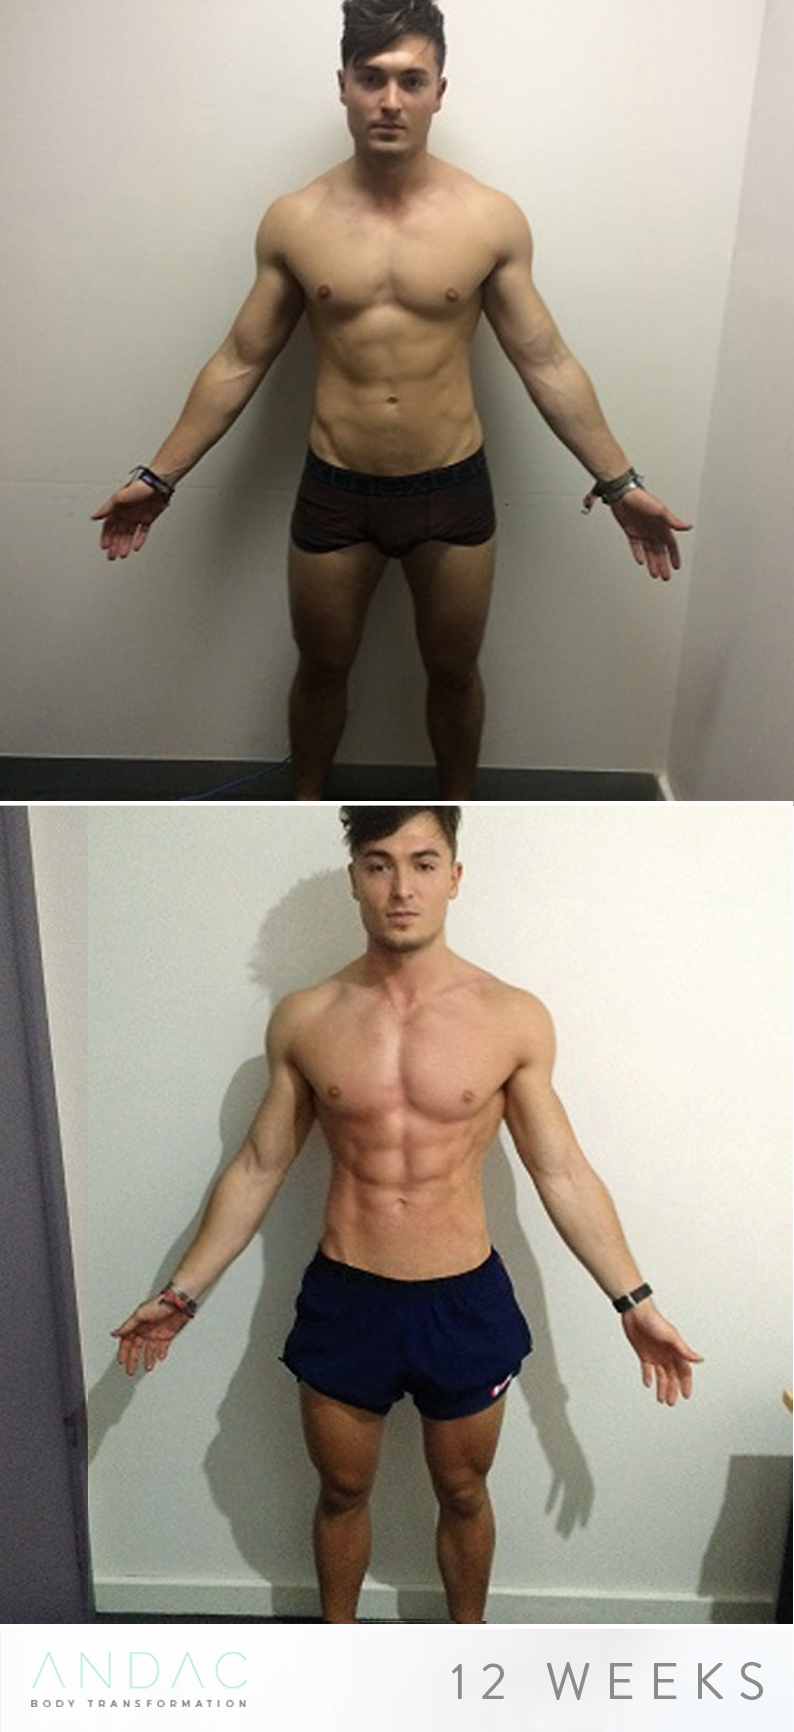 JOSHAR'S 12 WEEK TRANSFORMATION -